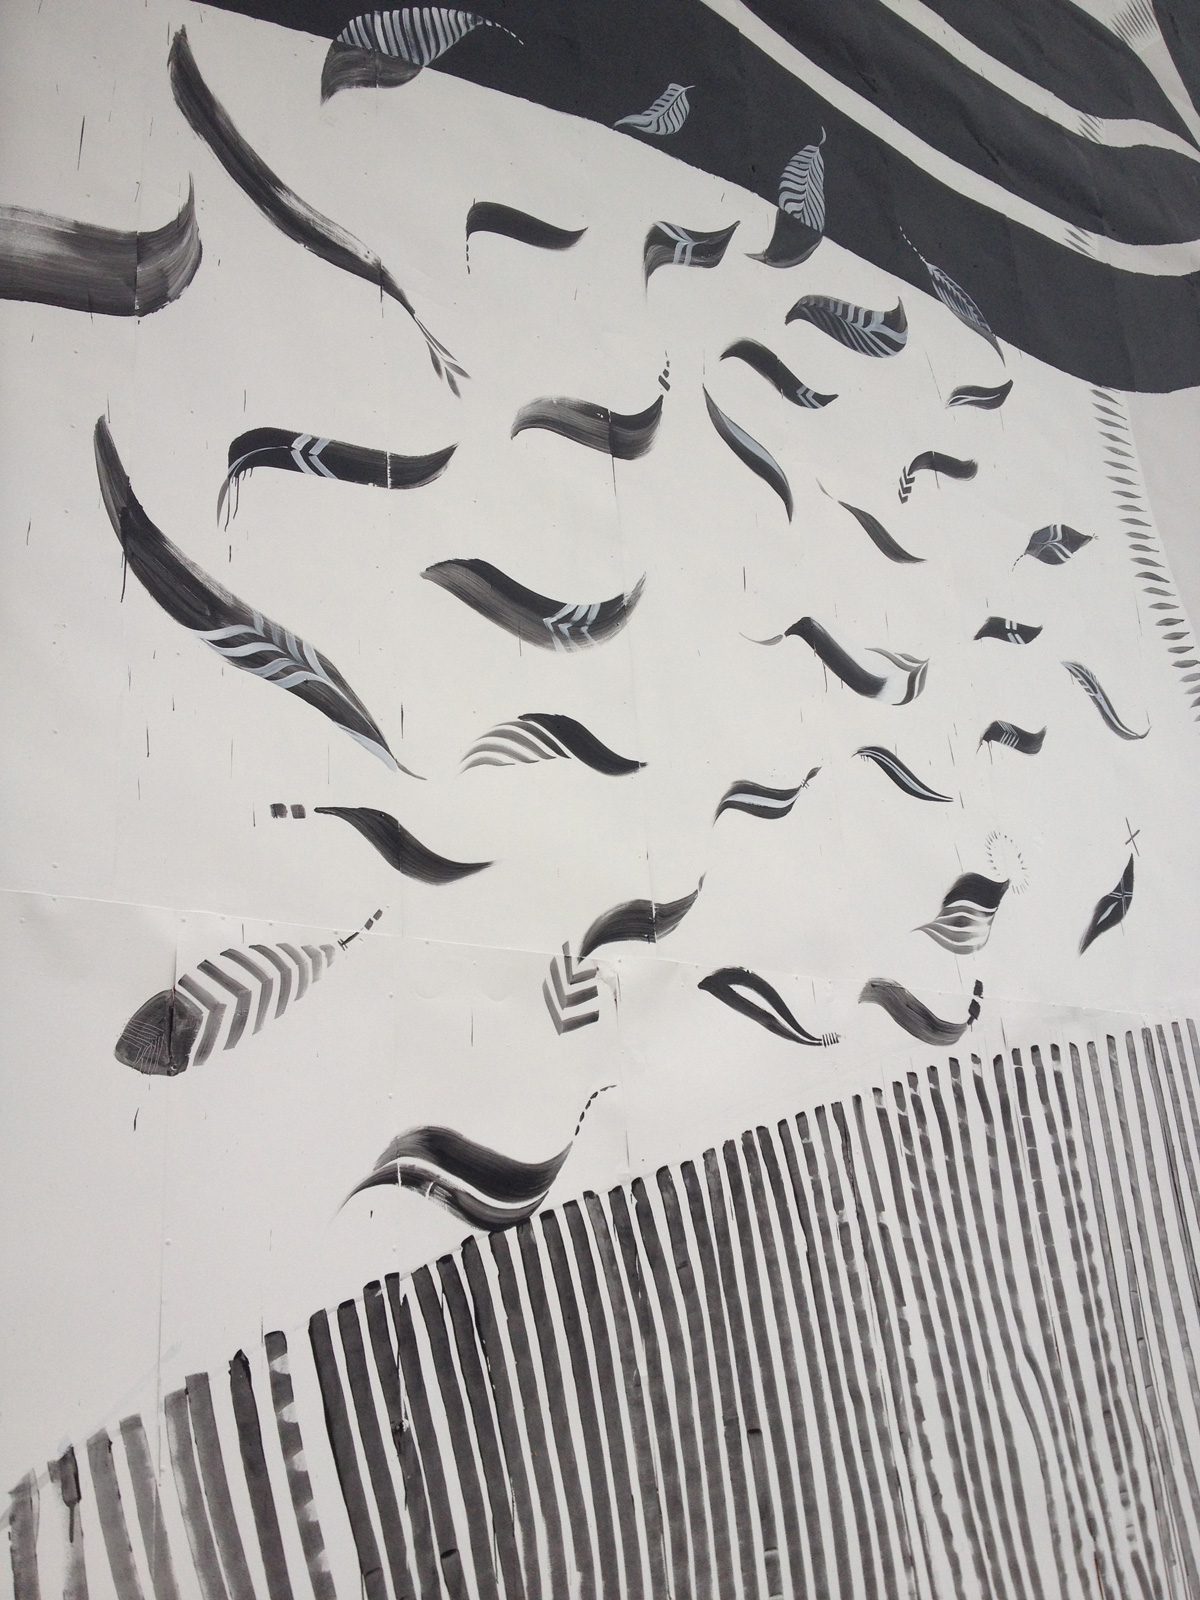 Lucy McLauchlan makes her first trip to downtown Guangzhou